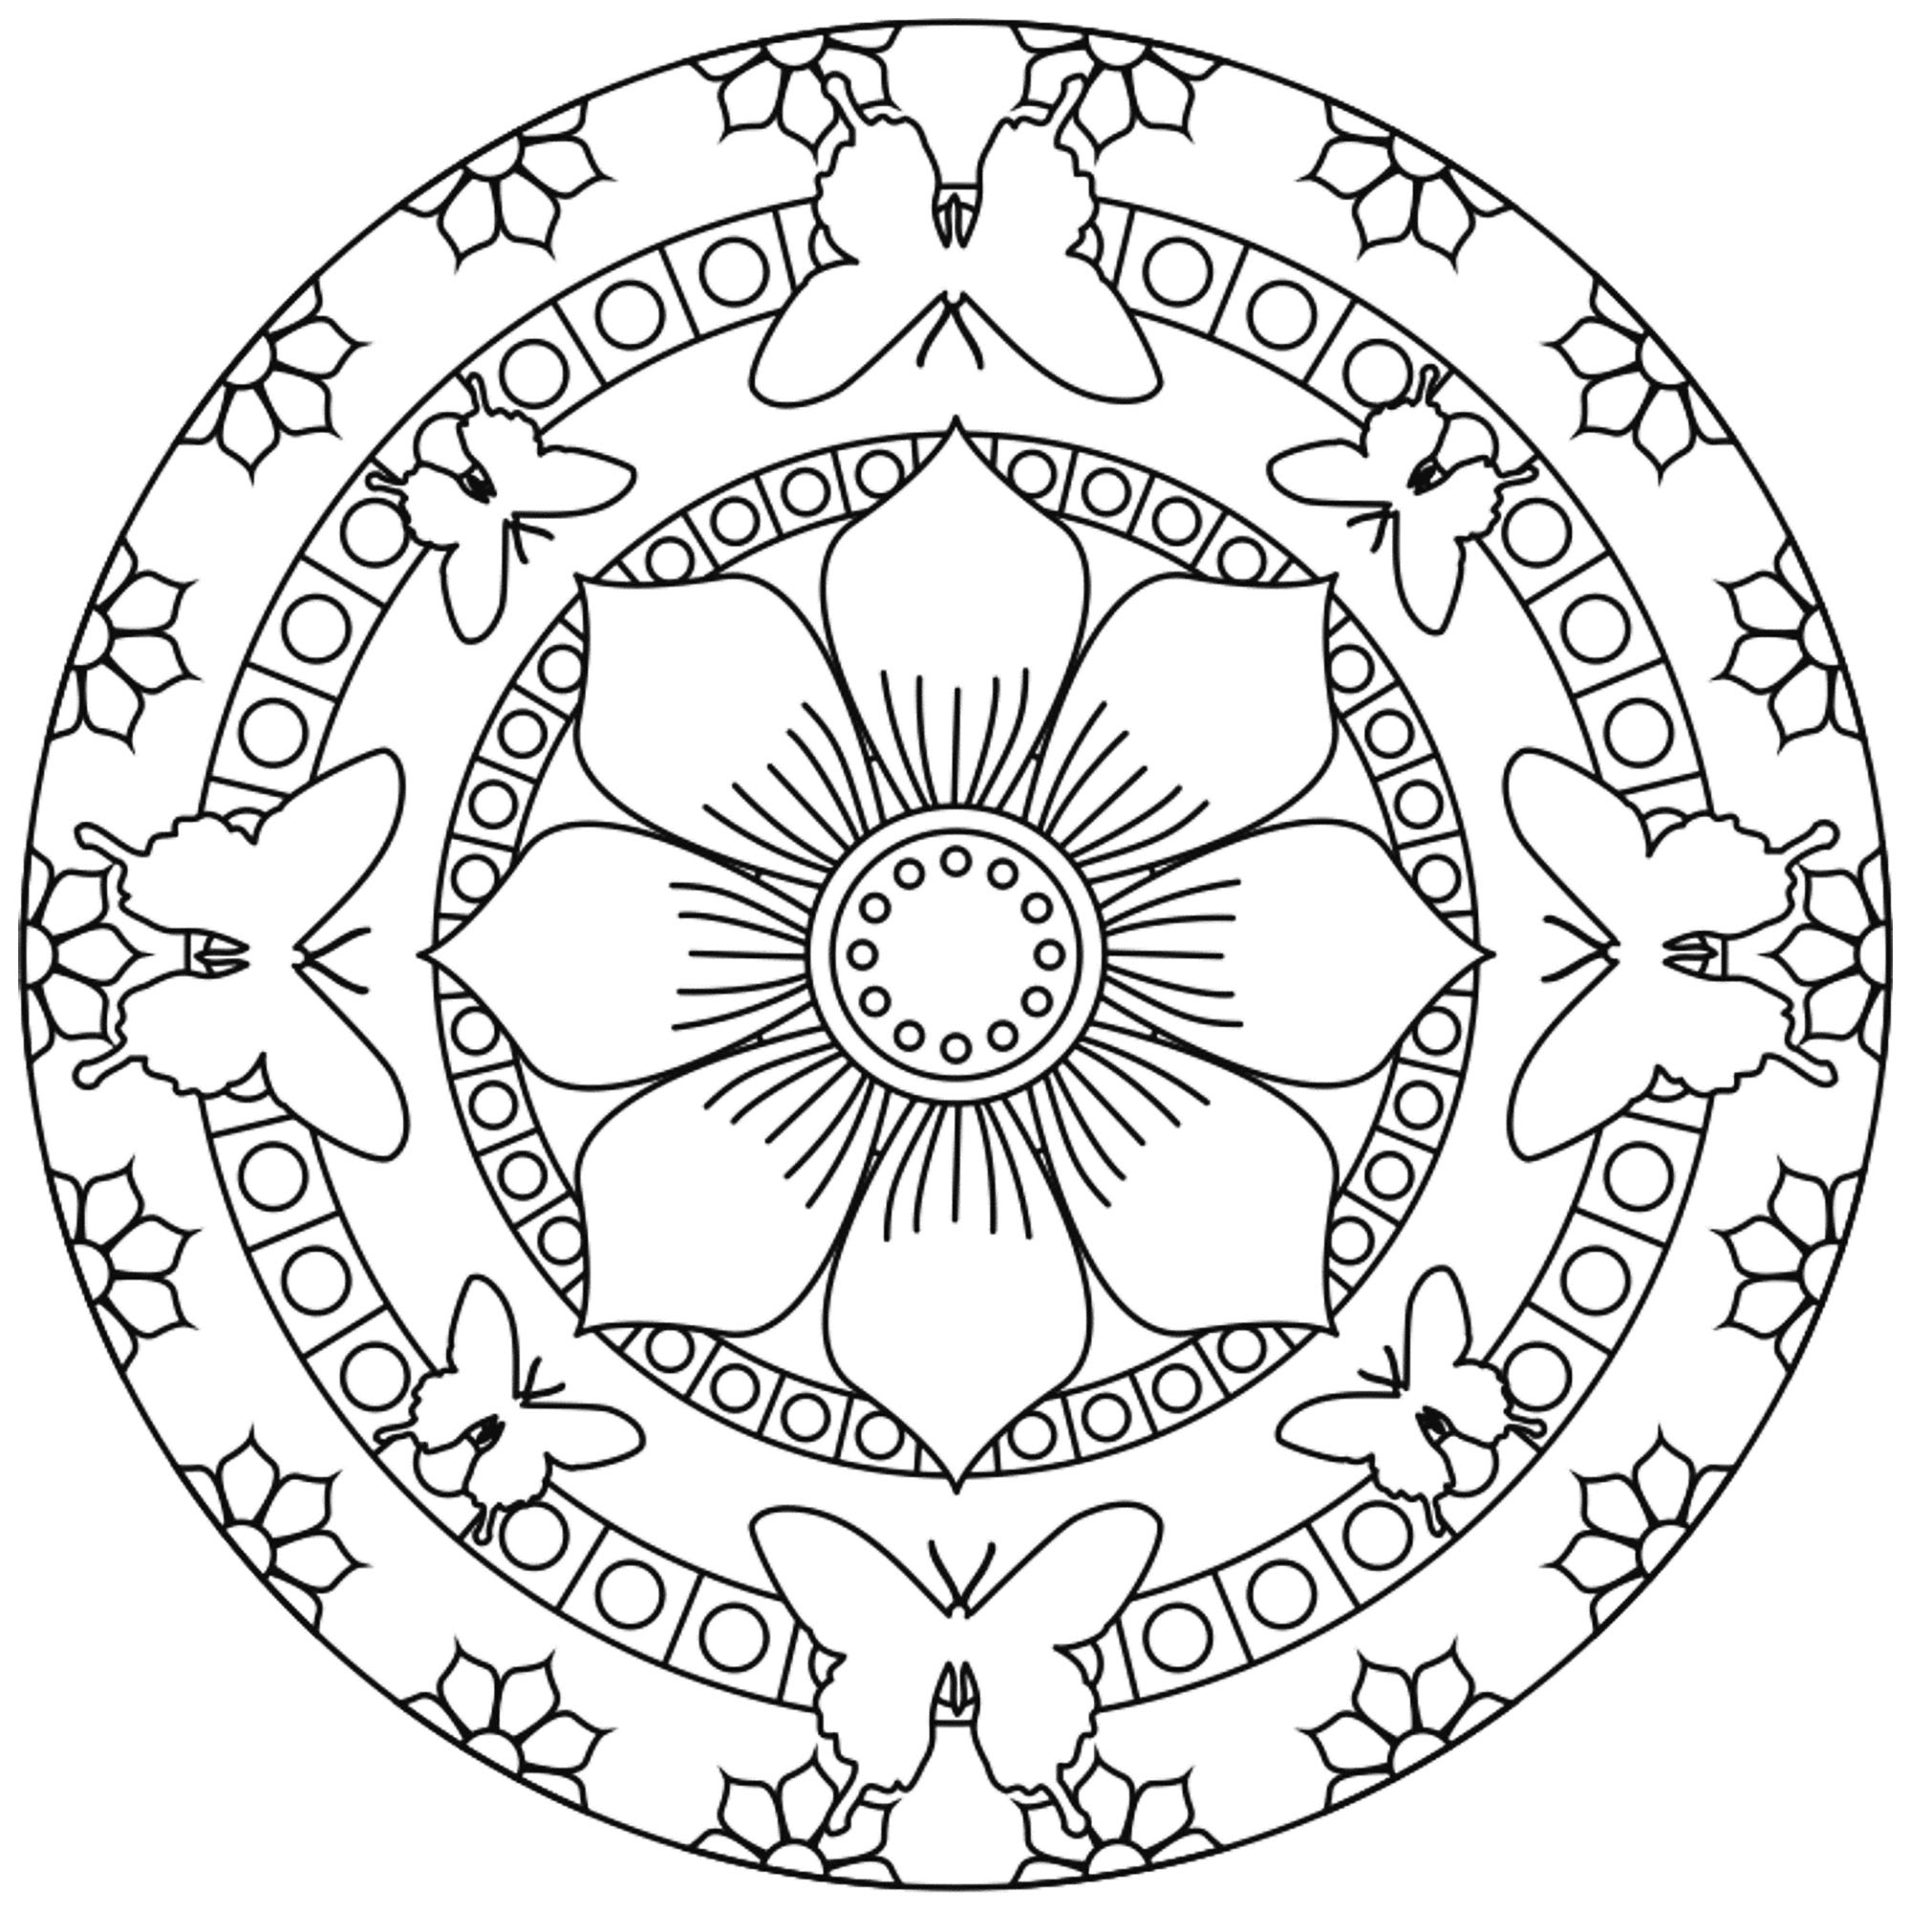 mandala coloring pages for adults free 25 unique mandala turtle ideas on pinterest adult pages coloring adults free mandala for